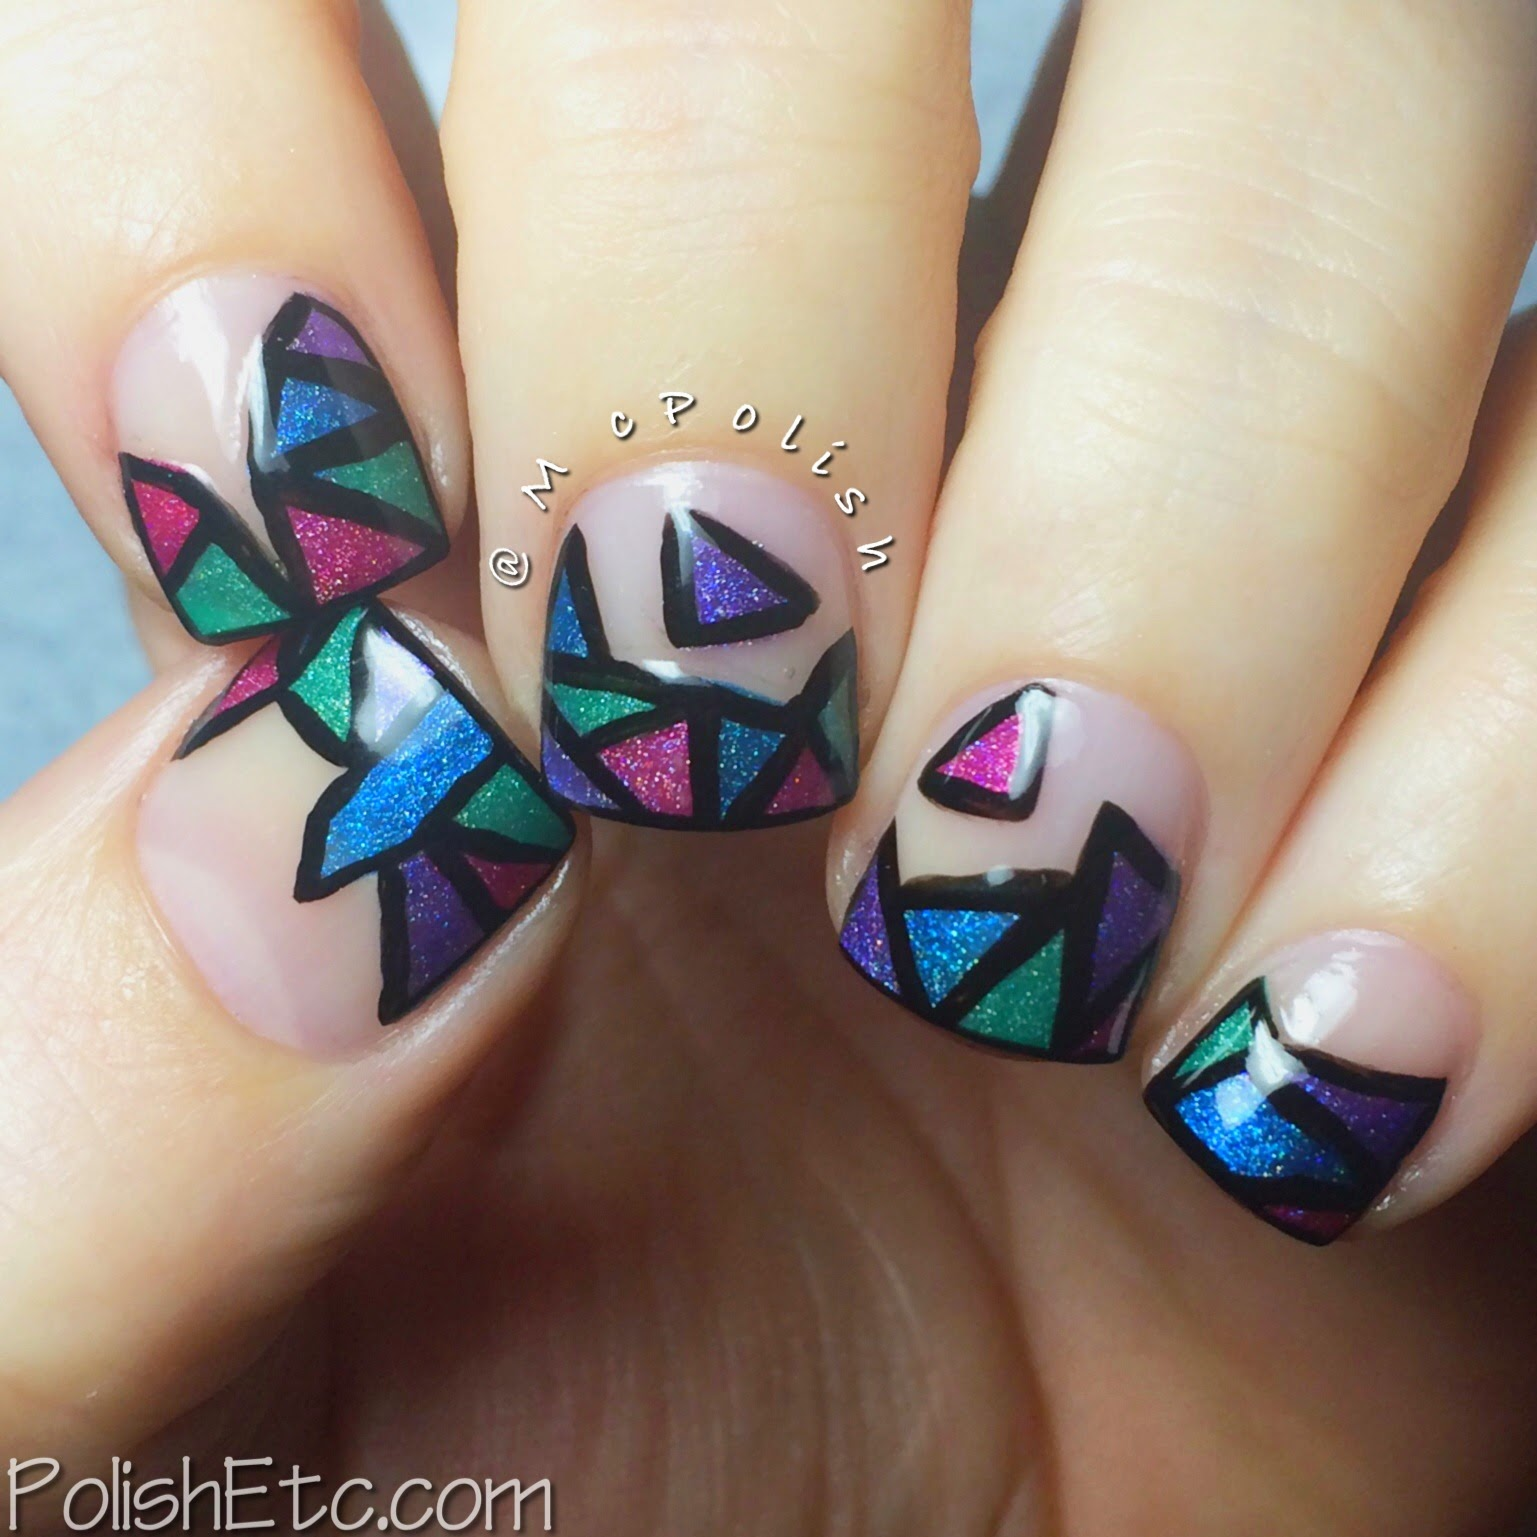 31 Day Nail Art Challenge - #31dc2014 - McPolish - GEOMETRIC